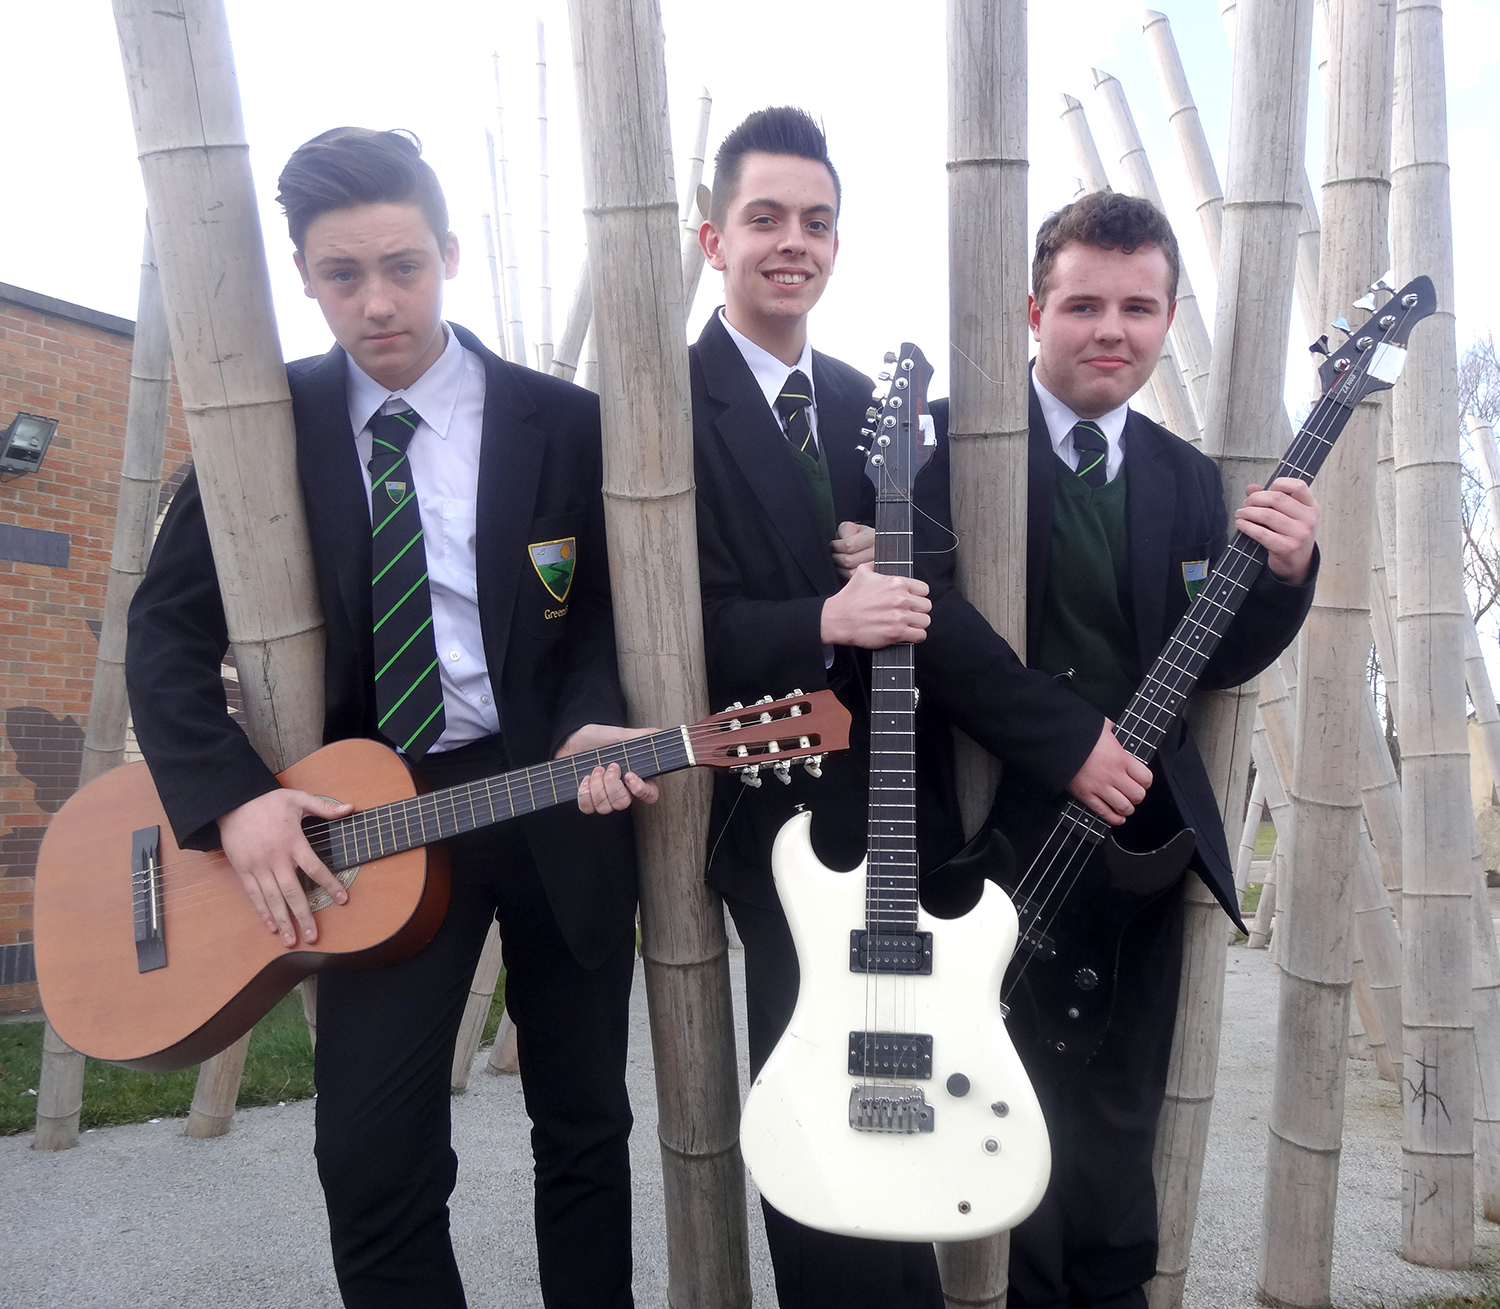 £10k Grant to Replace Musical Instruments